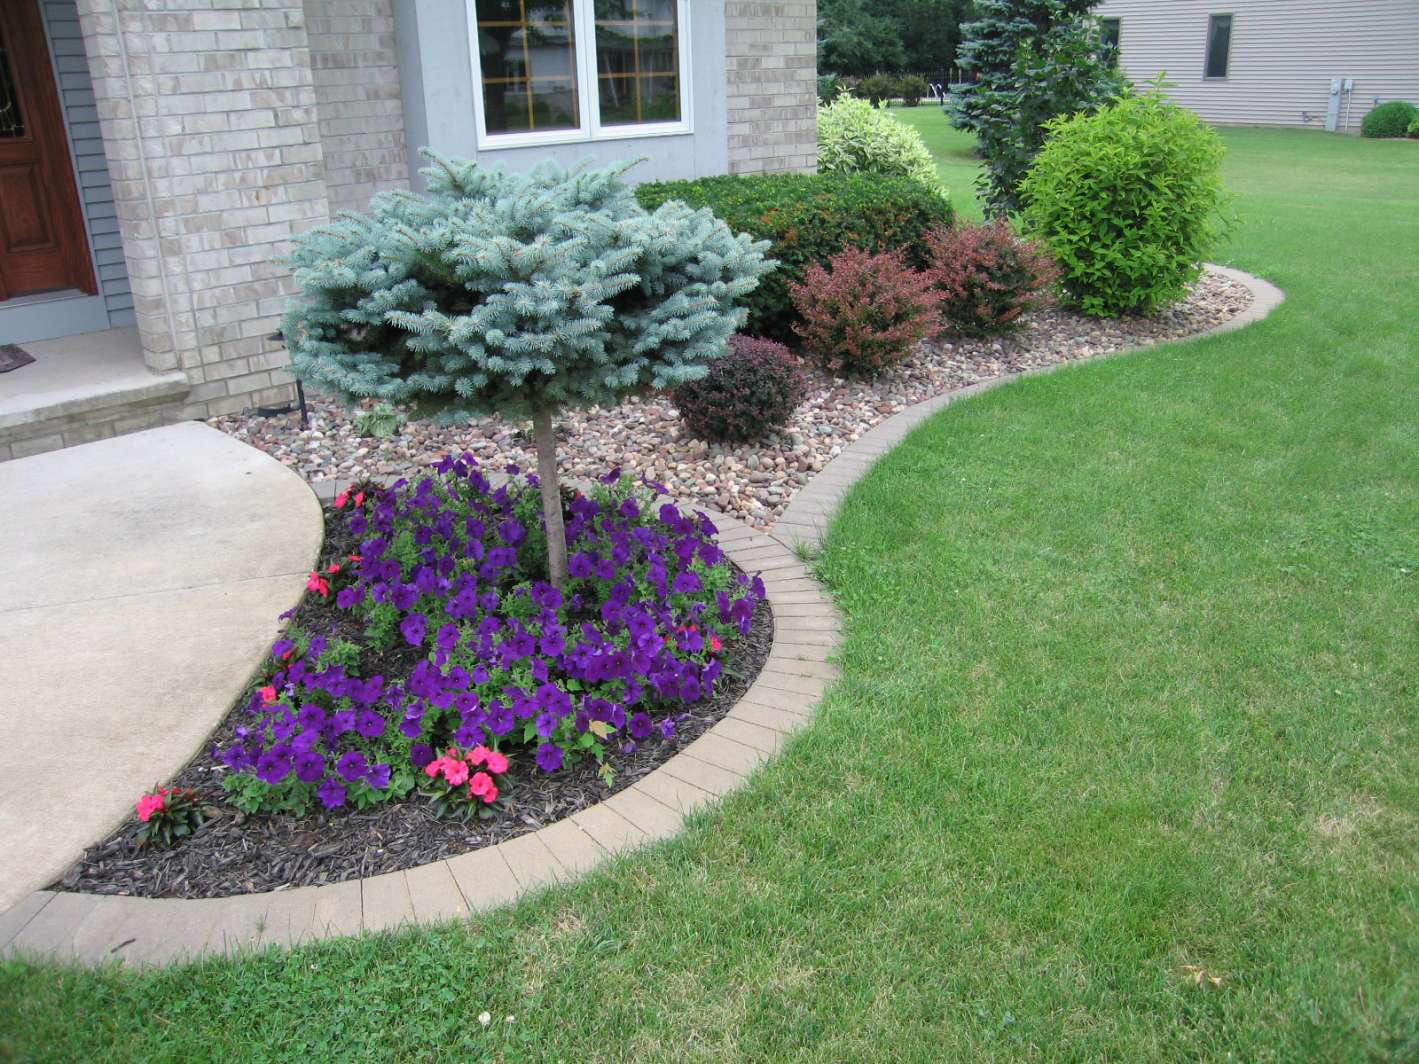 Bushes for landscaping popular landscaping groundcovers for Low bushes for landscaping